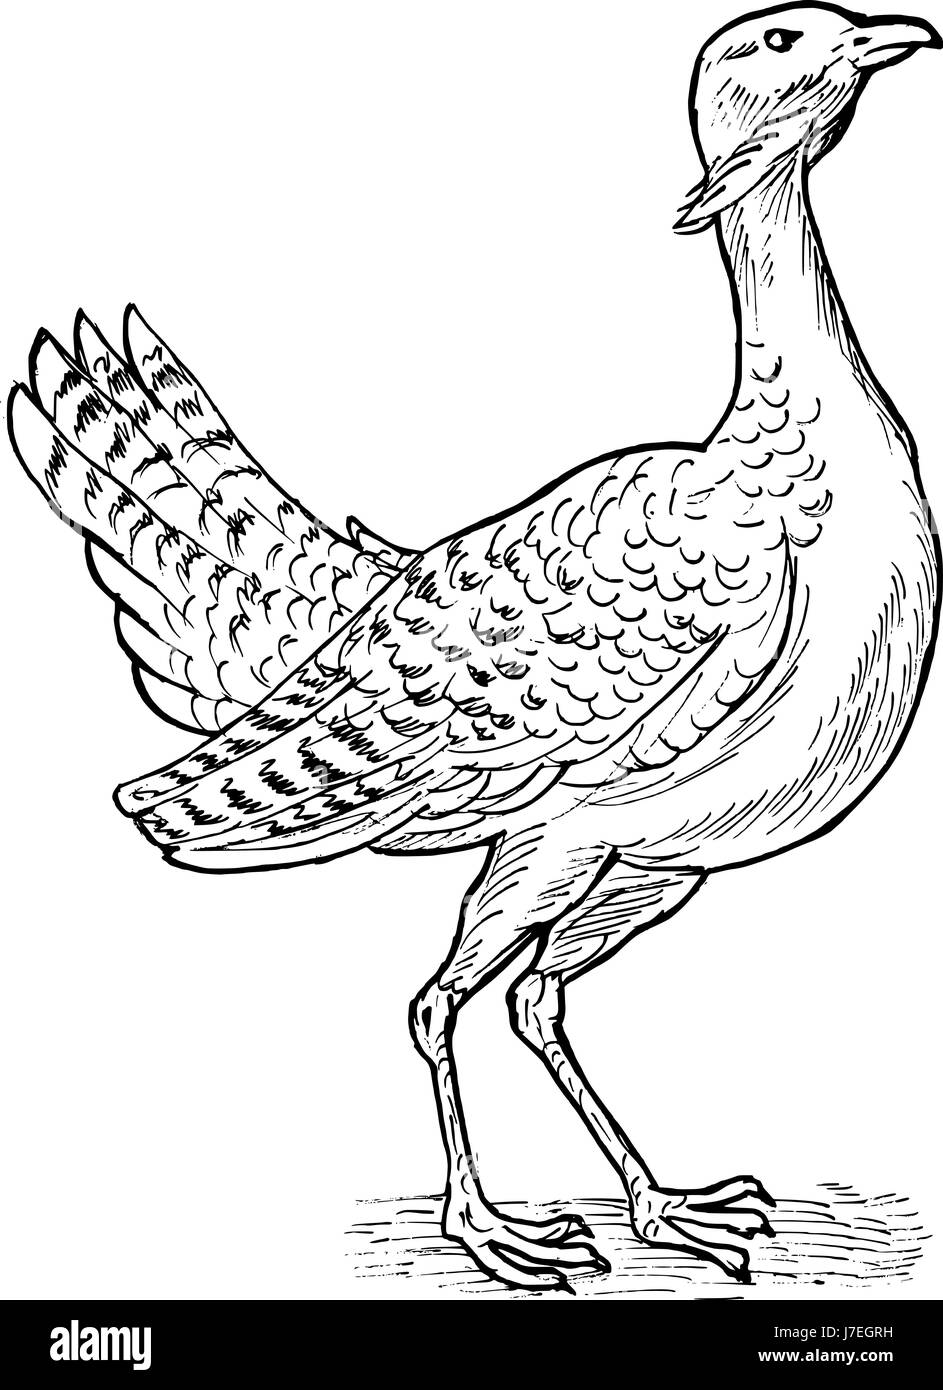 animal bird wild illustration drawing photo picture image copy deduction sketch Stock Photo